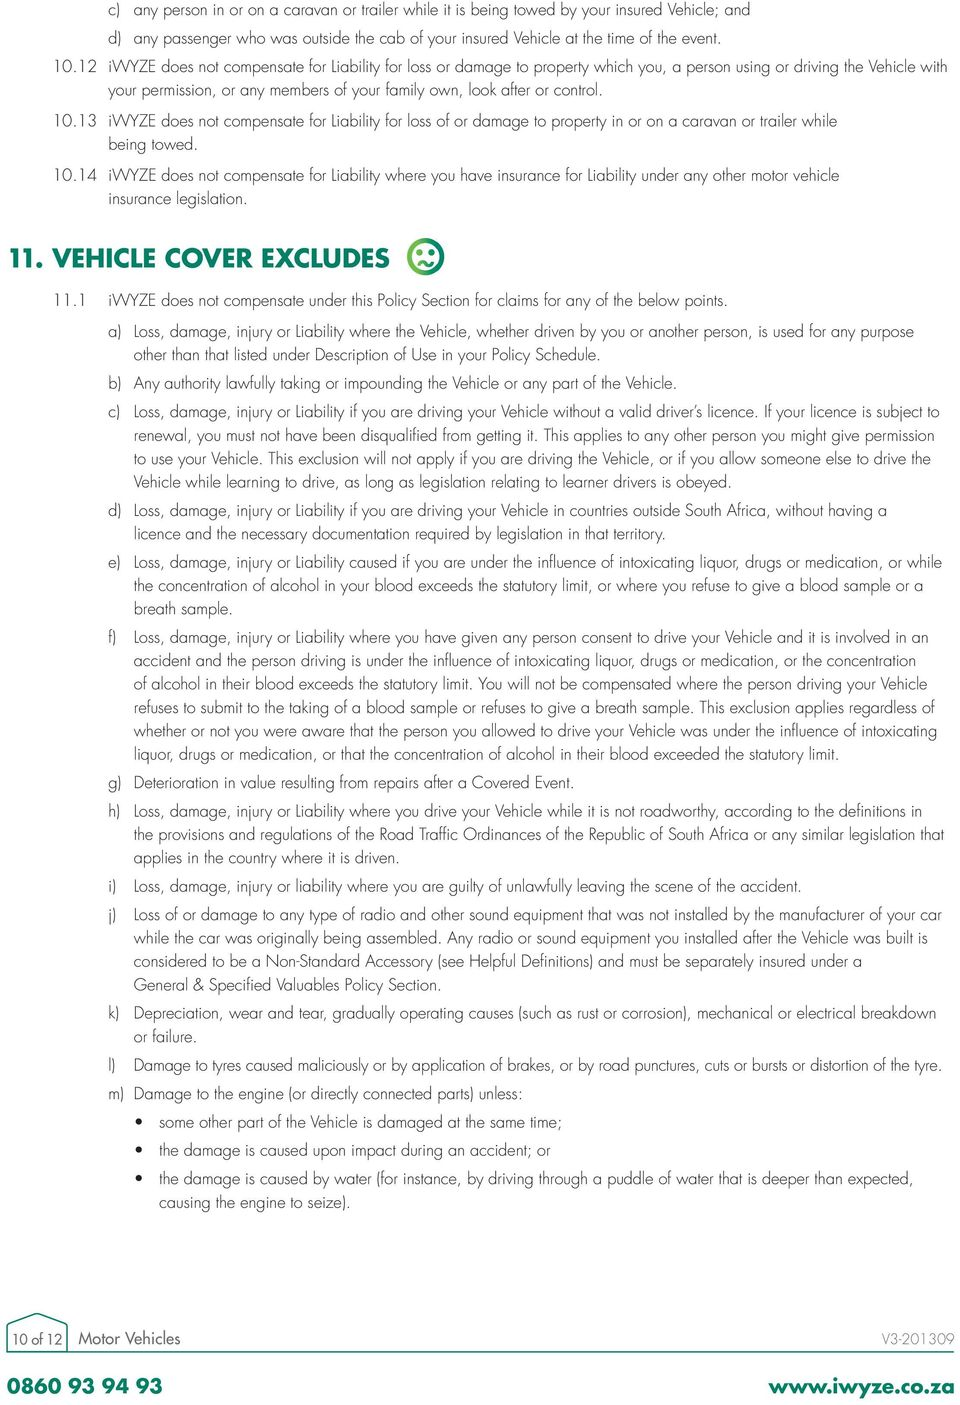 control. 10.13 iwyze does not compensate for Liability for loss of or damage to property in or on a caravan or trailer while being towed. 10.14 iwyze does not compensate for Liability where you have insurance for Liability under any other motor vehicle insurance legislation.